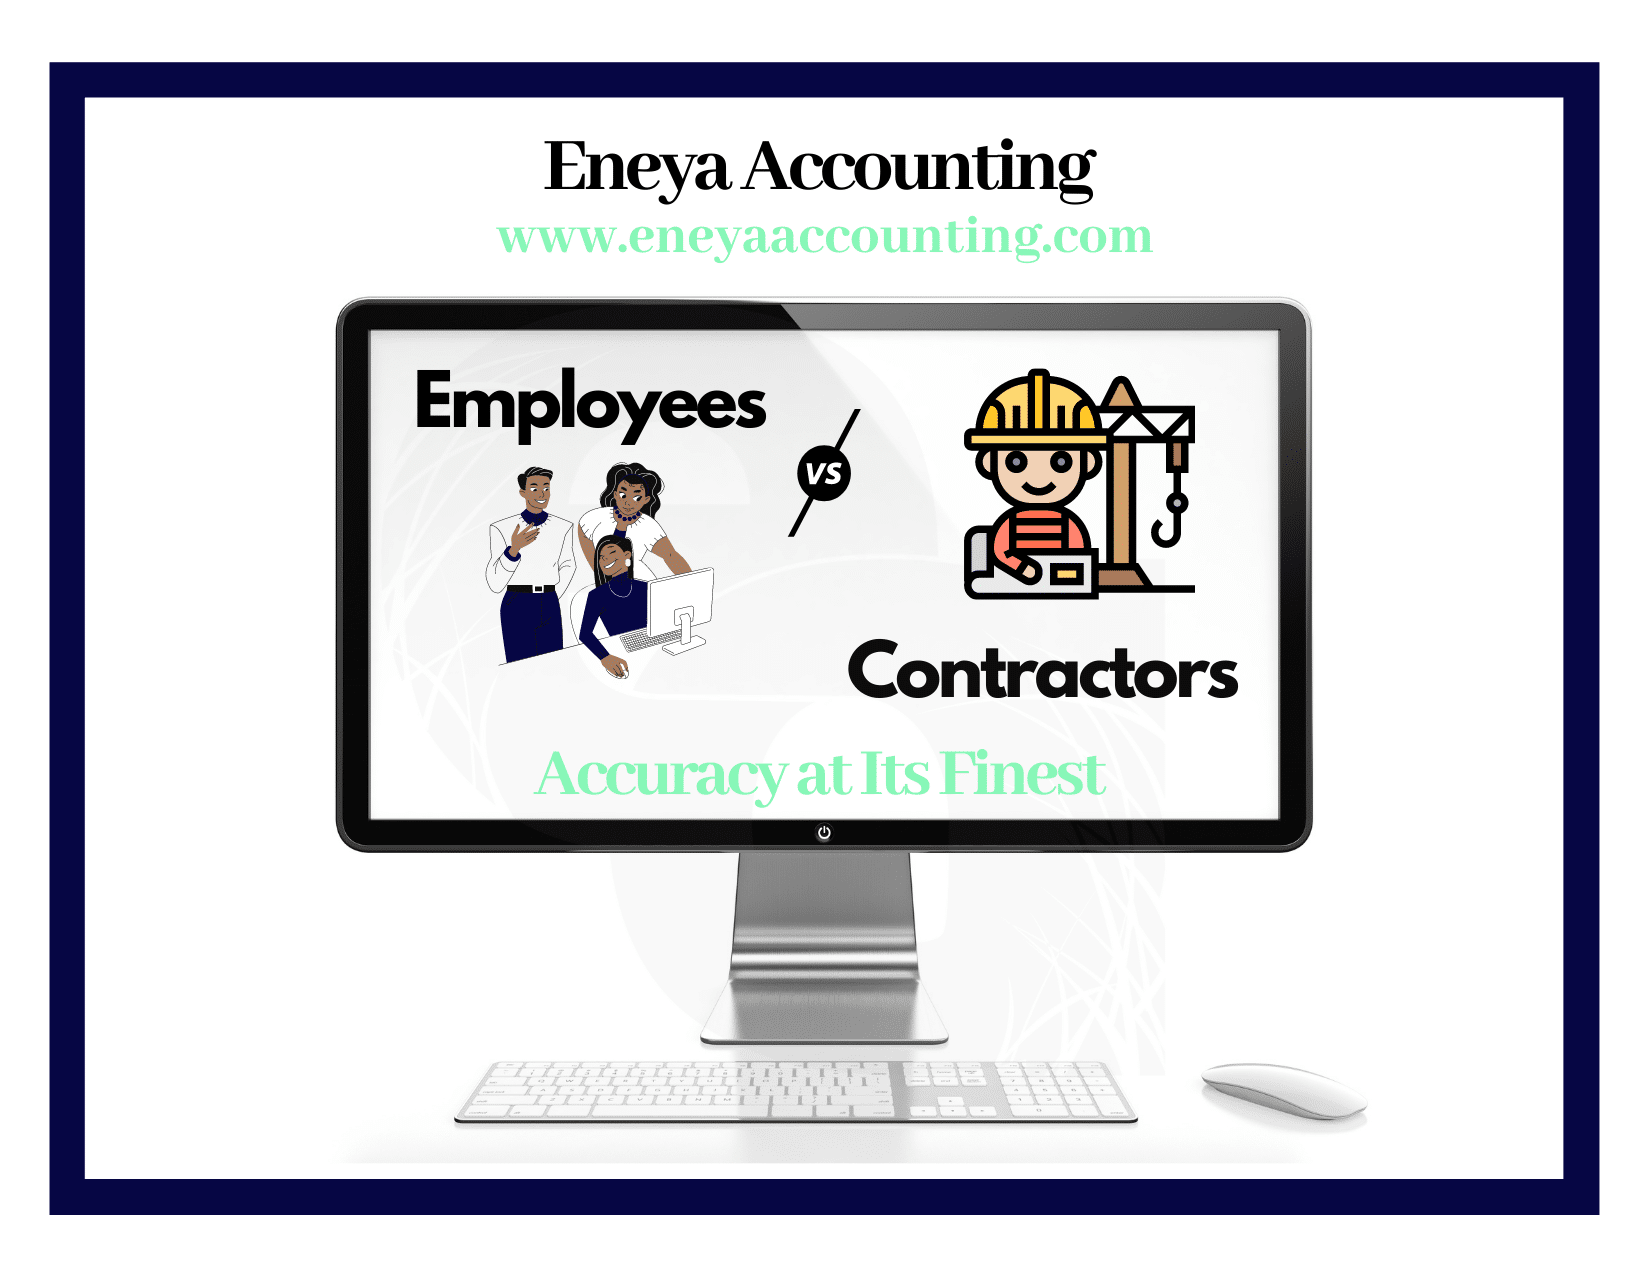 How Do You Differentiate Employees and Contractors?